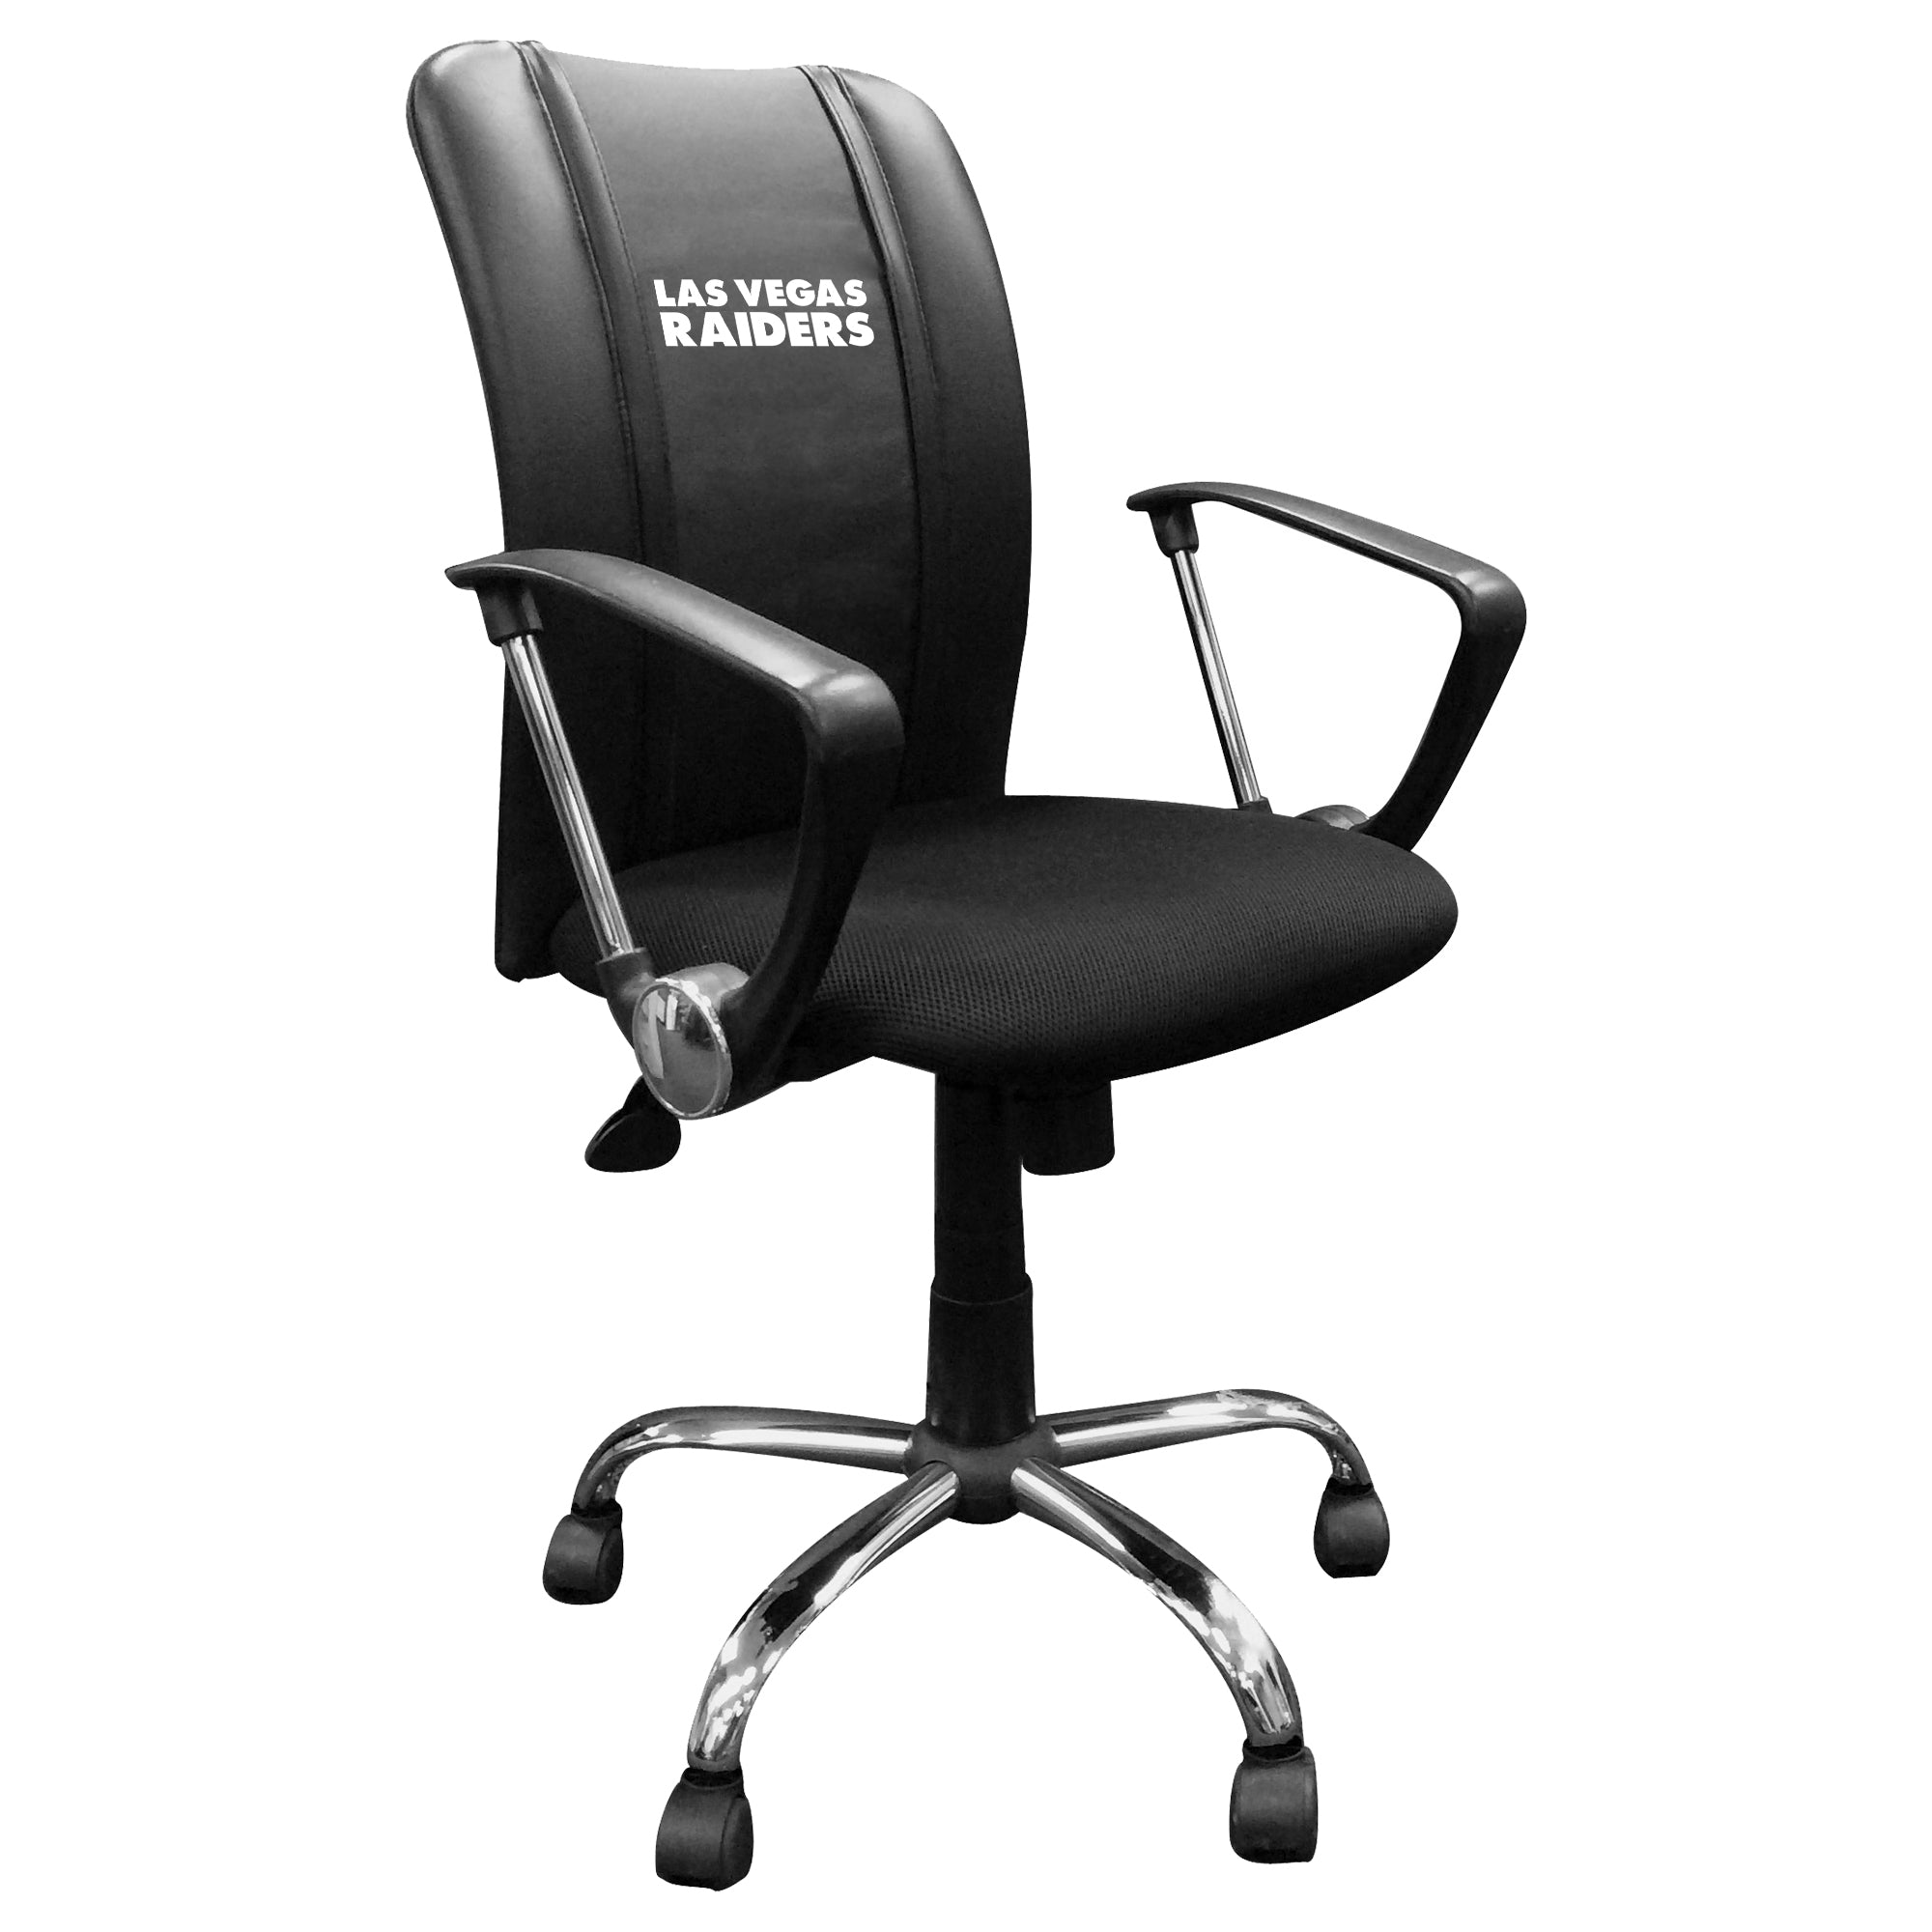 Curve Task Chair with  Las Vegas Raiders Secondary Logo